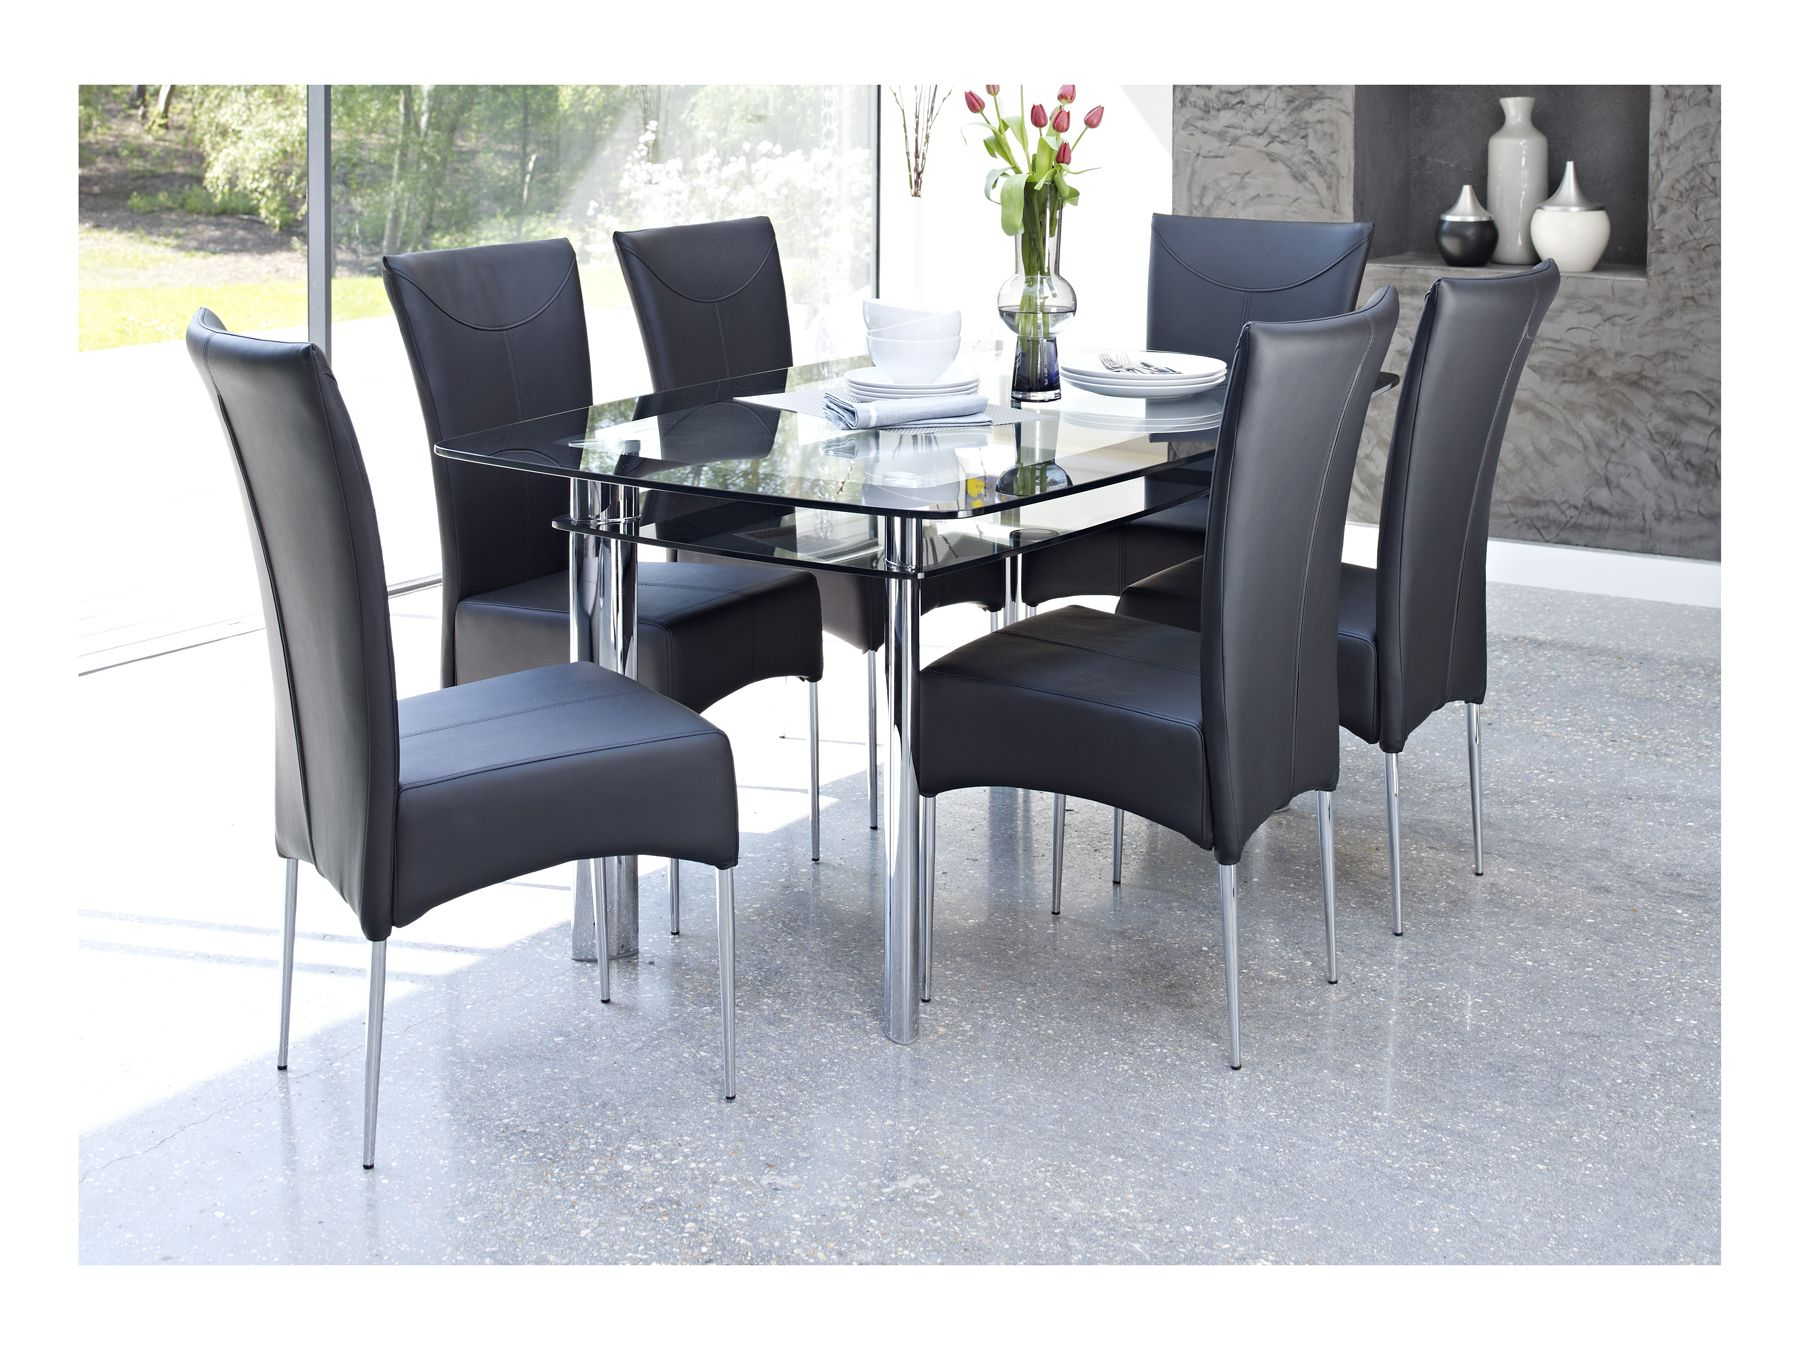 Black Dining Table And Chairs Glass Dining Table With Black Chairs Whatever